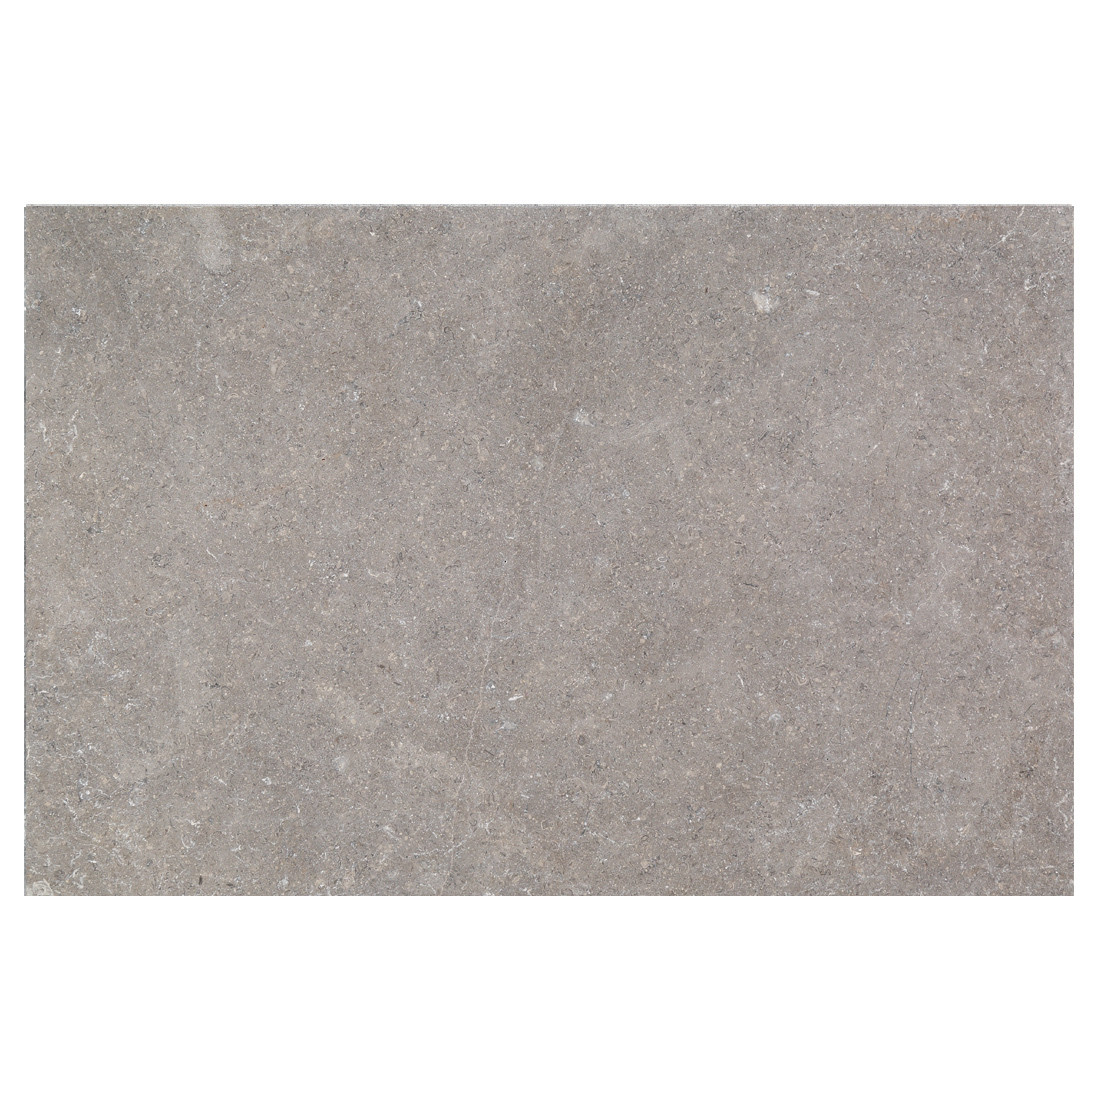 Amora Limestone- Brushed & Tumbled